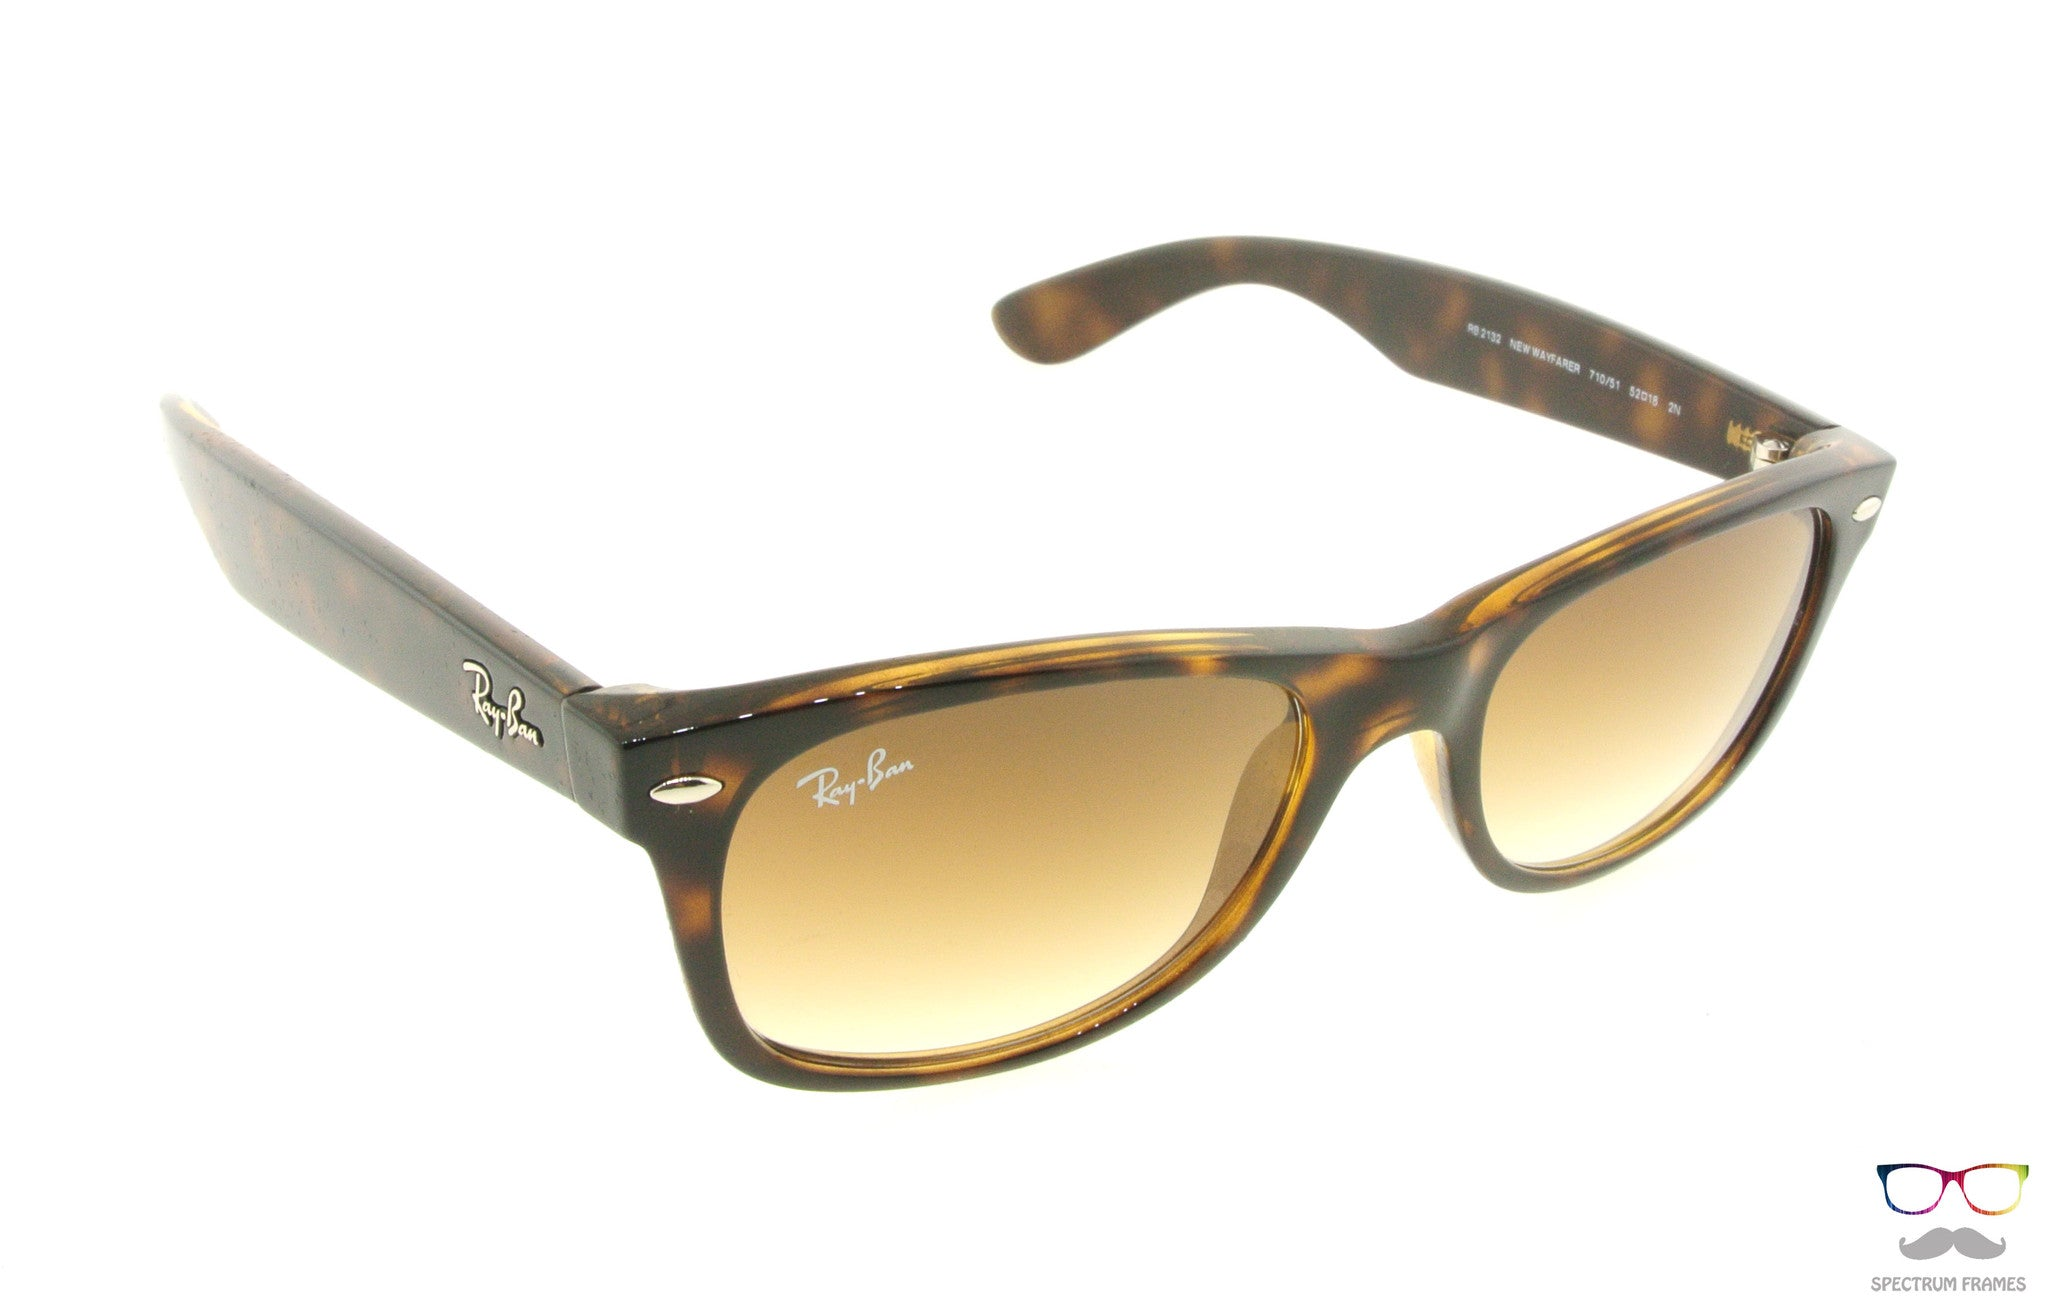 451be69f6a6 ... Ray Ban Sunglasses RB 2132 710 51 Tortoise with Gradient Brown Lenses  Size 52 ...